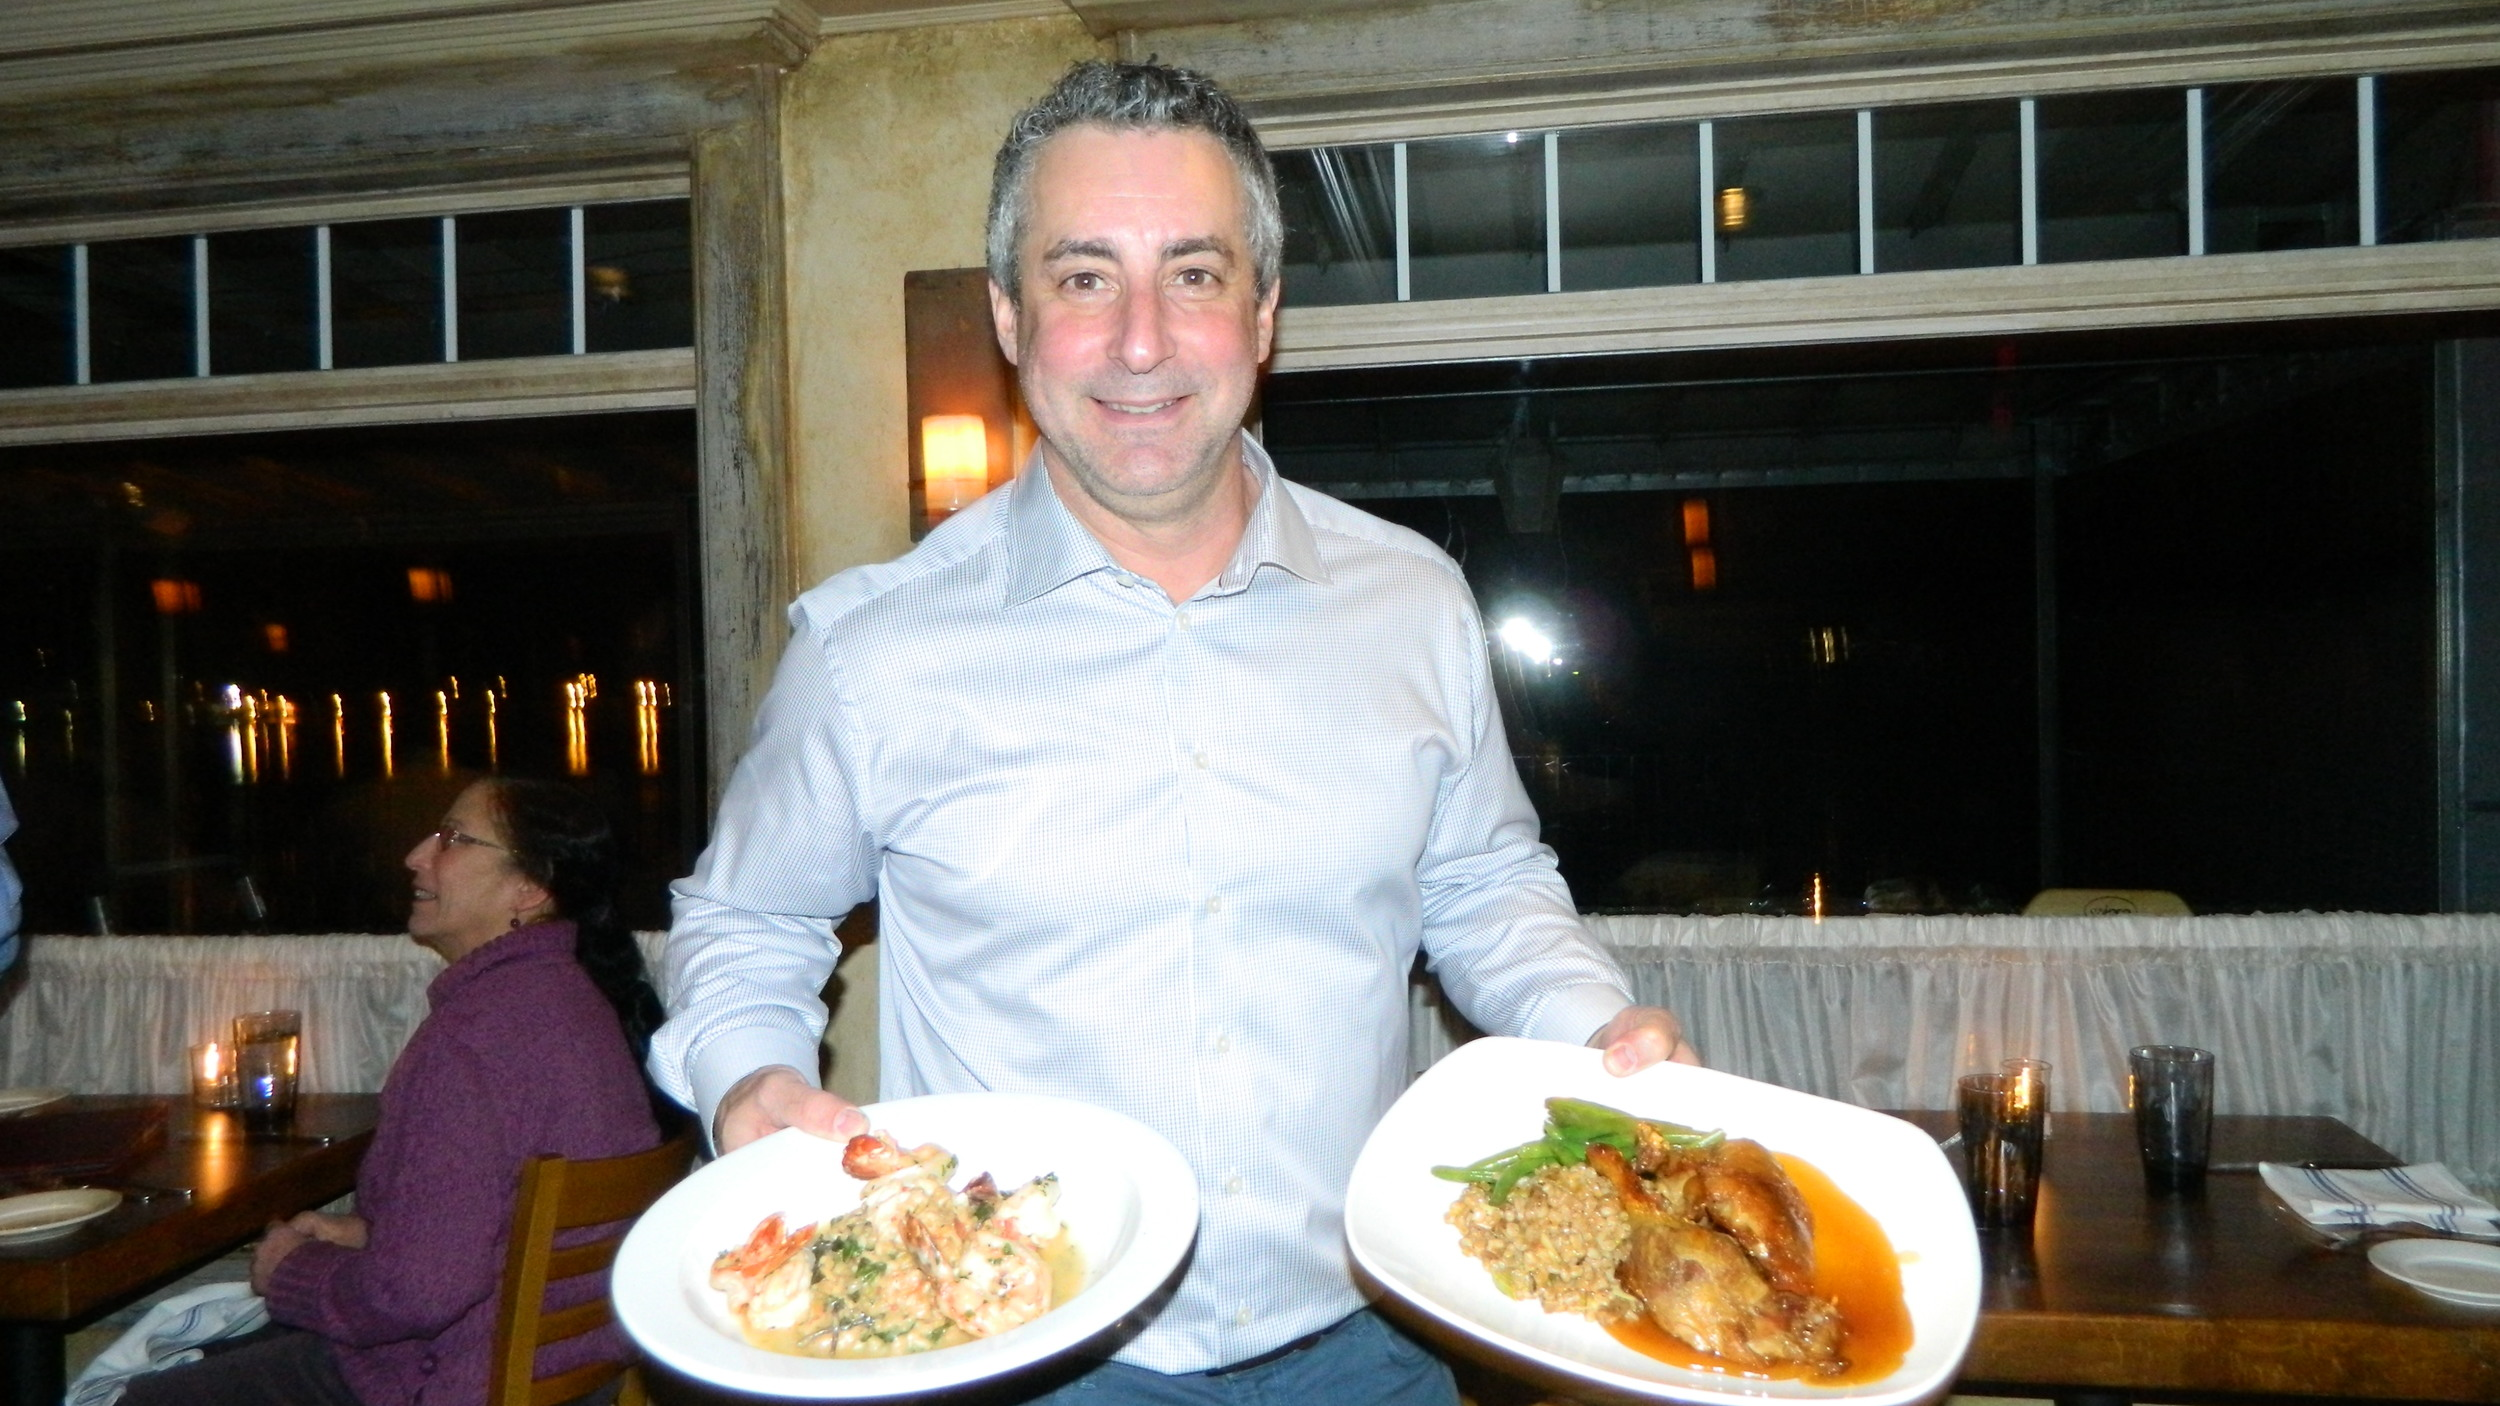 Dean Philippis, Mill Pond House owner, presents shrimp scampi and crispy duck.